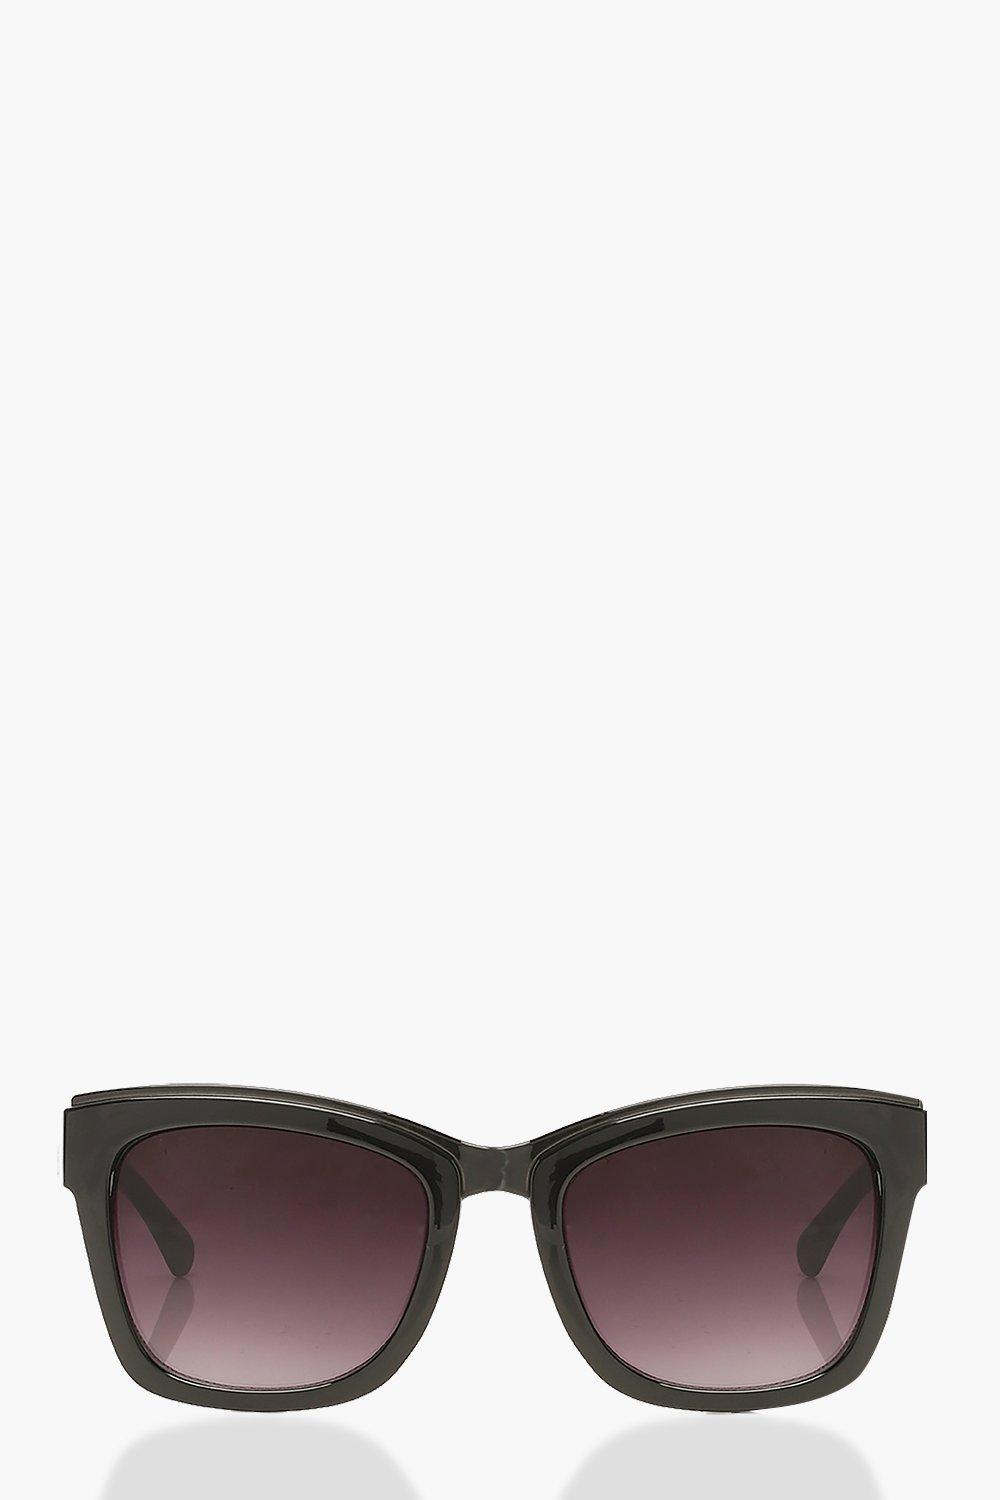 boohoo Womens Square Sunglasses With Arm Detail - Black - One Size, Black